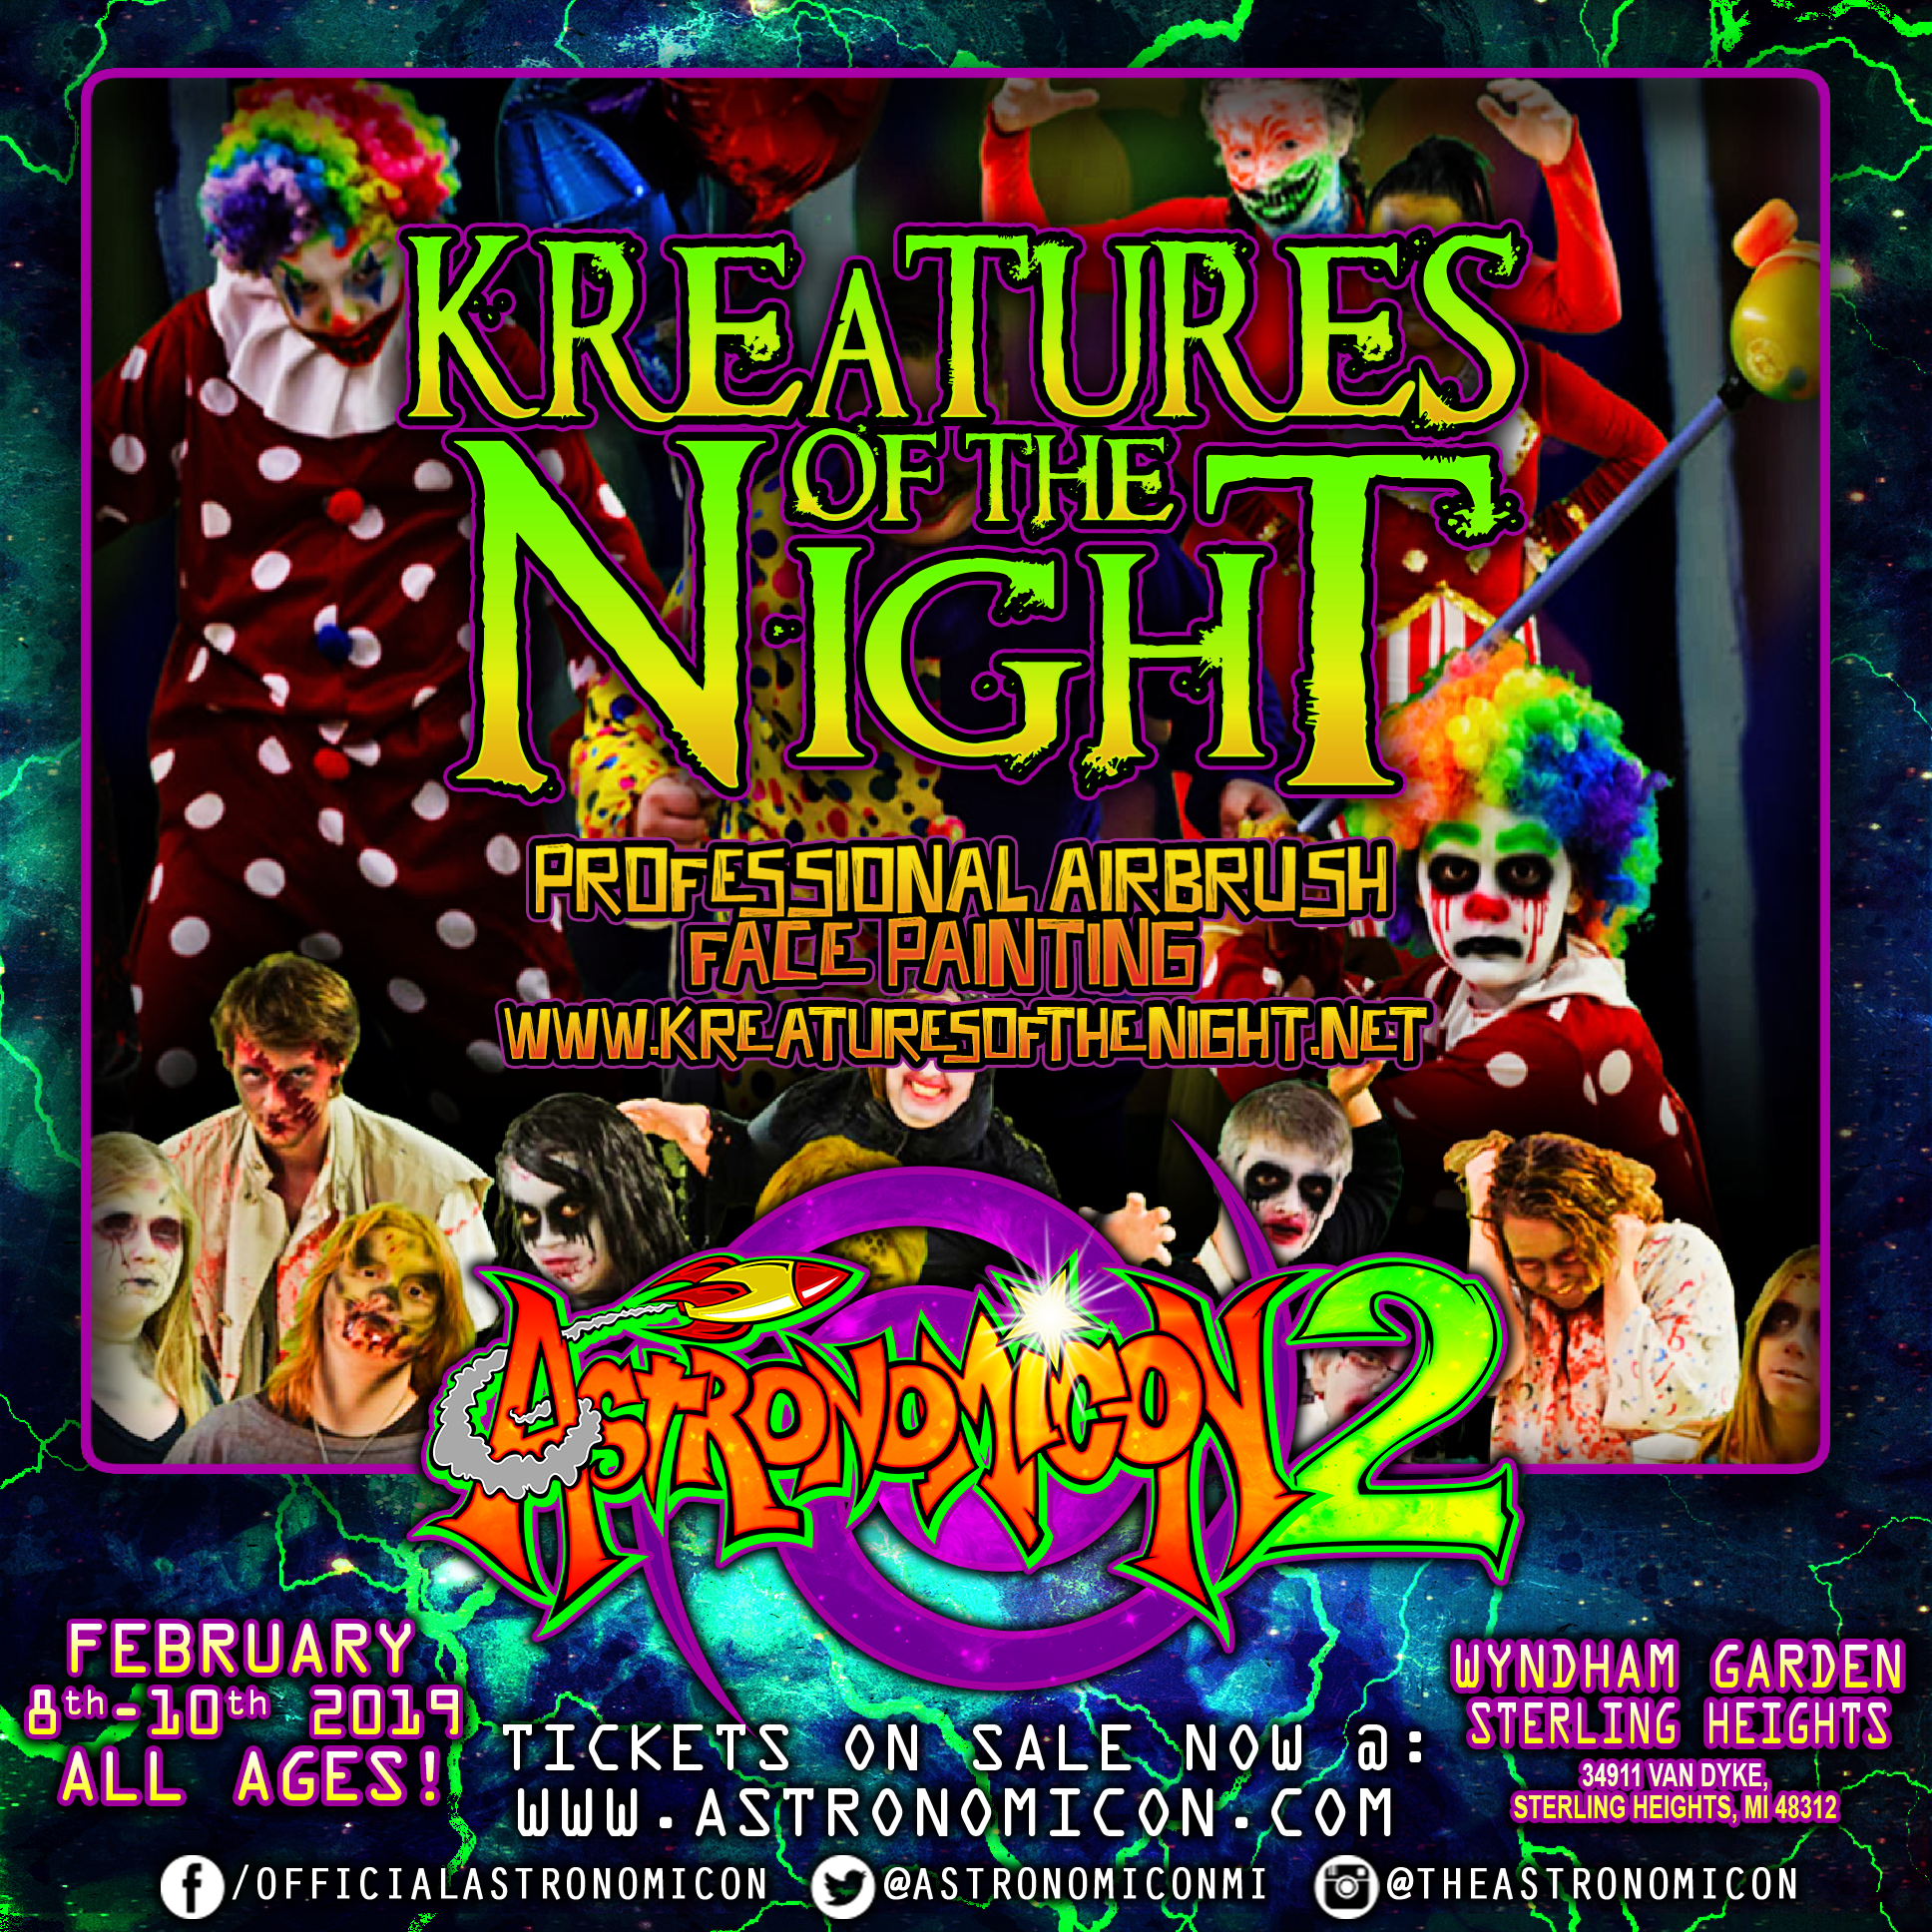 Astronomicon 2 Kreatures Of The Night IG Ad.png